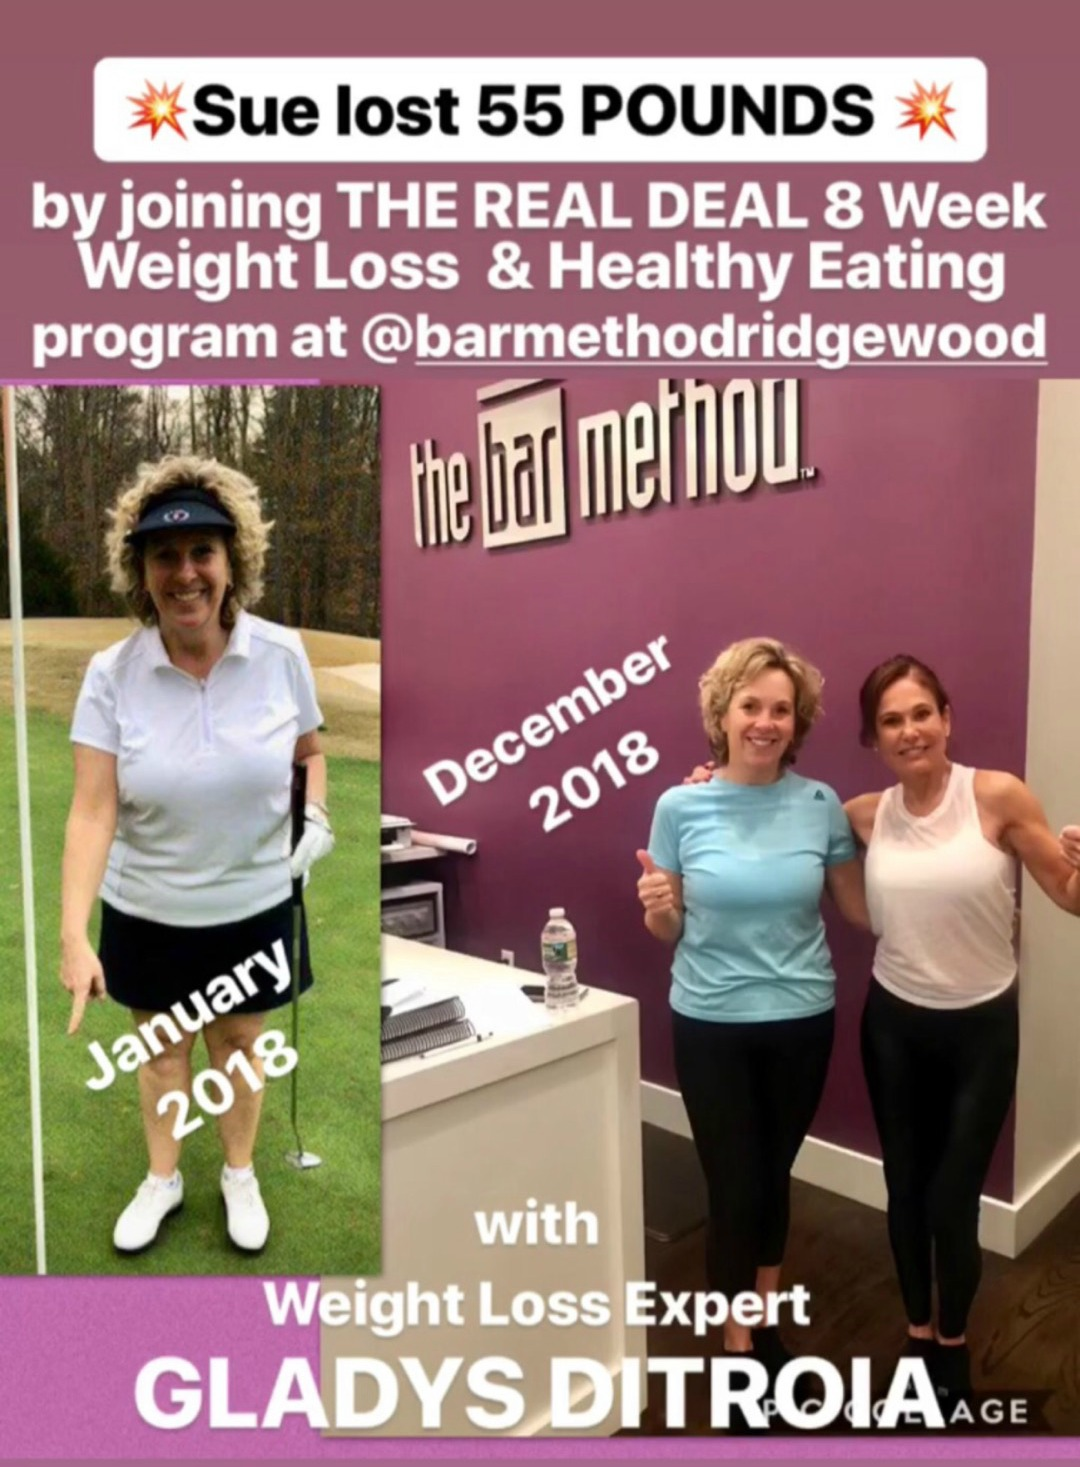 The Real Deal Online Weight Loss Program Results - Sue